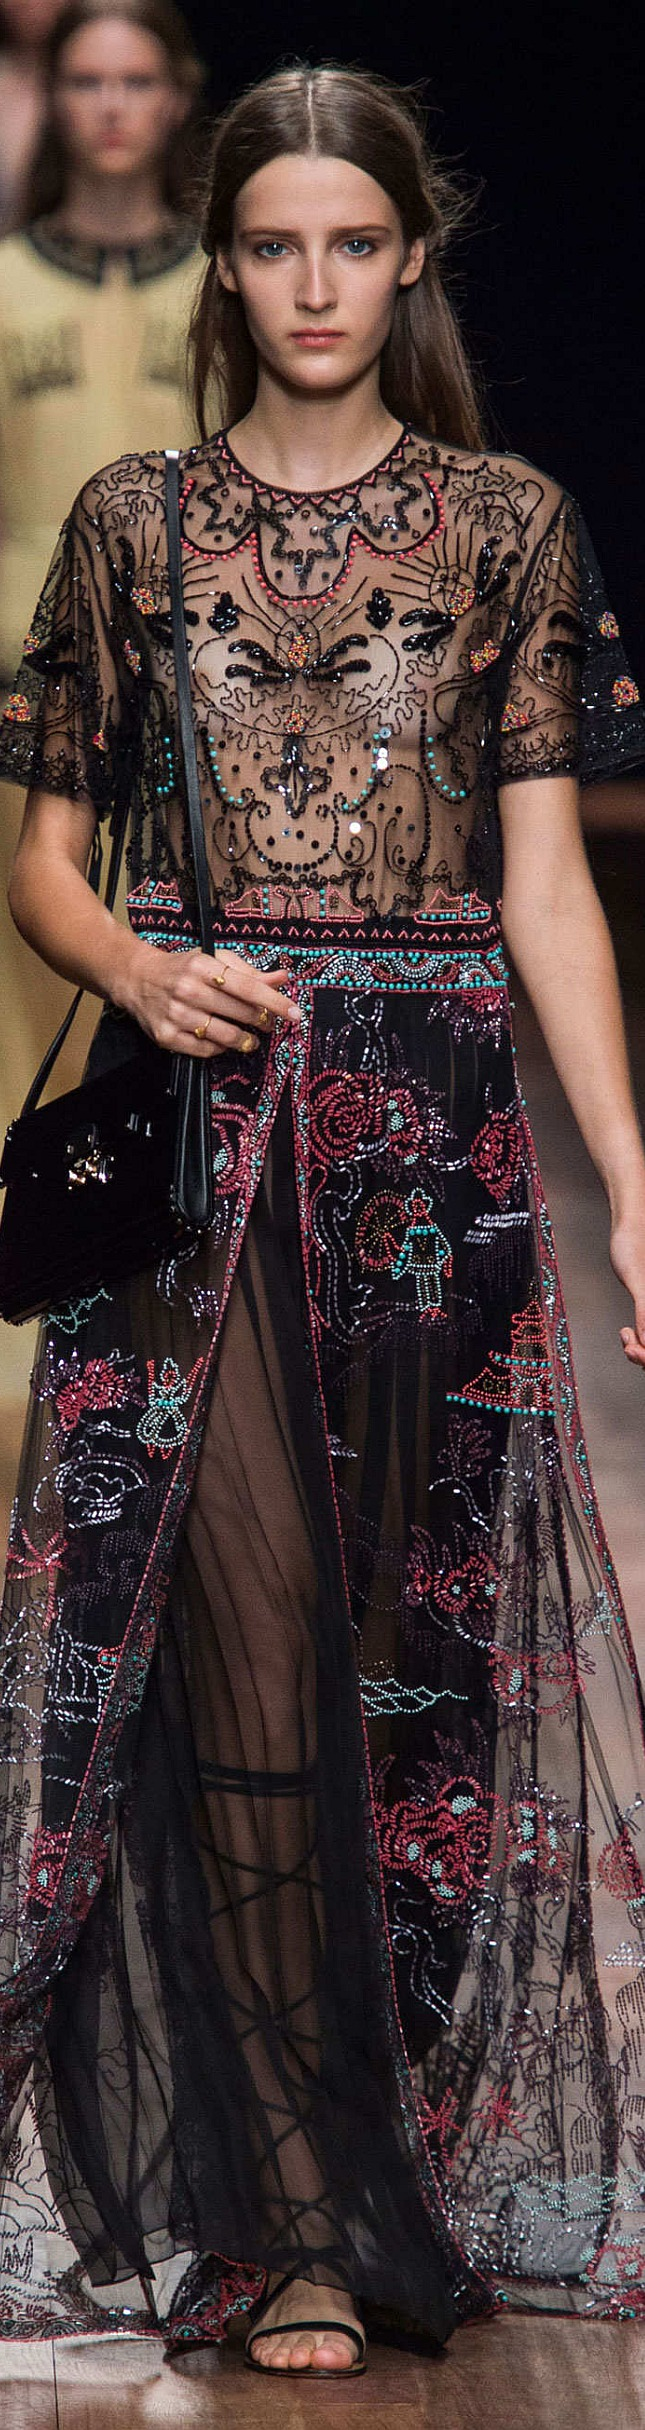 Valentino Collection  Spring 2015 Sheer and embellished, this dress in trend for next year. I wonder which A-lister will dare to bare on the upcoming red carpets?